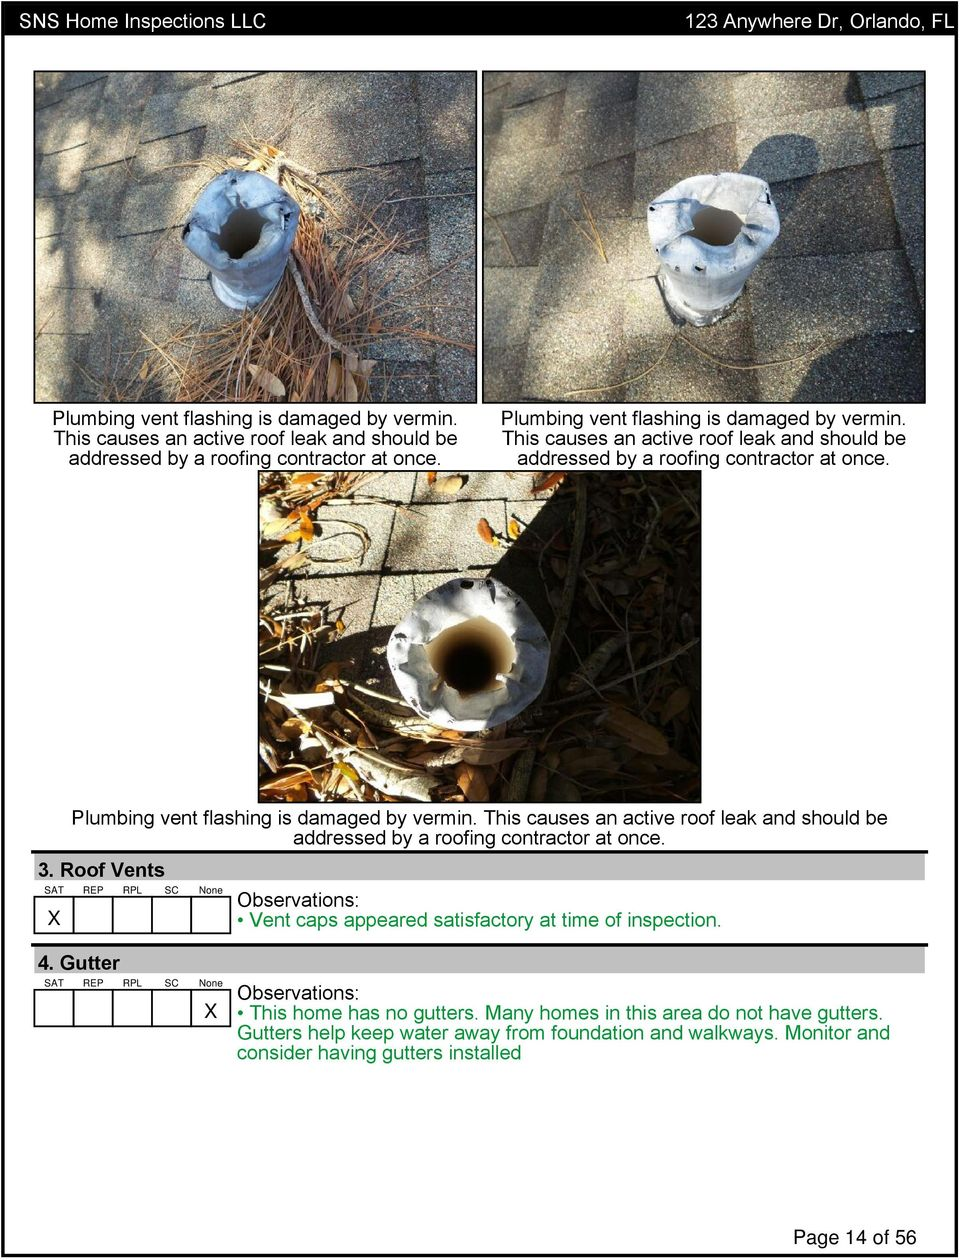 Gutters help keep water away from foundation and walkways. Monitor and consider having gutters installed Page 14 of 56